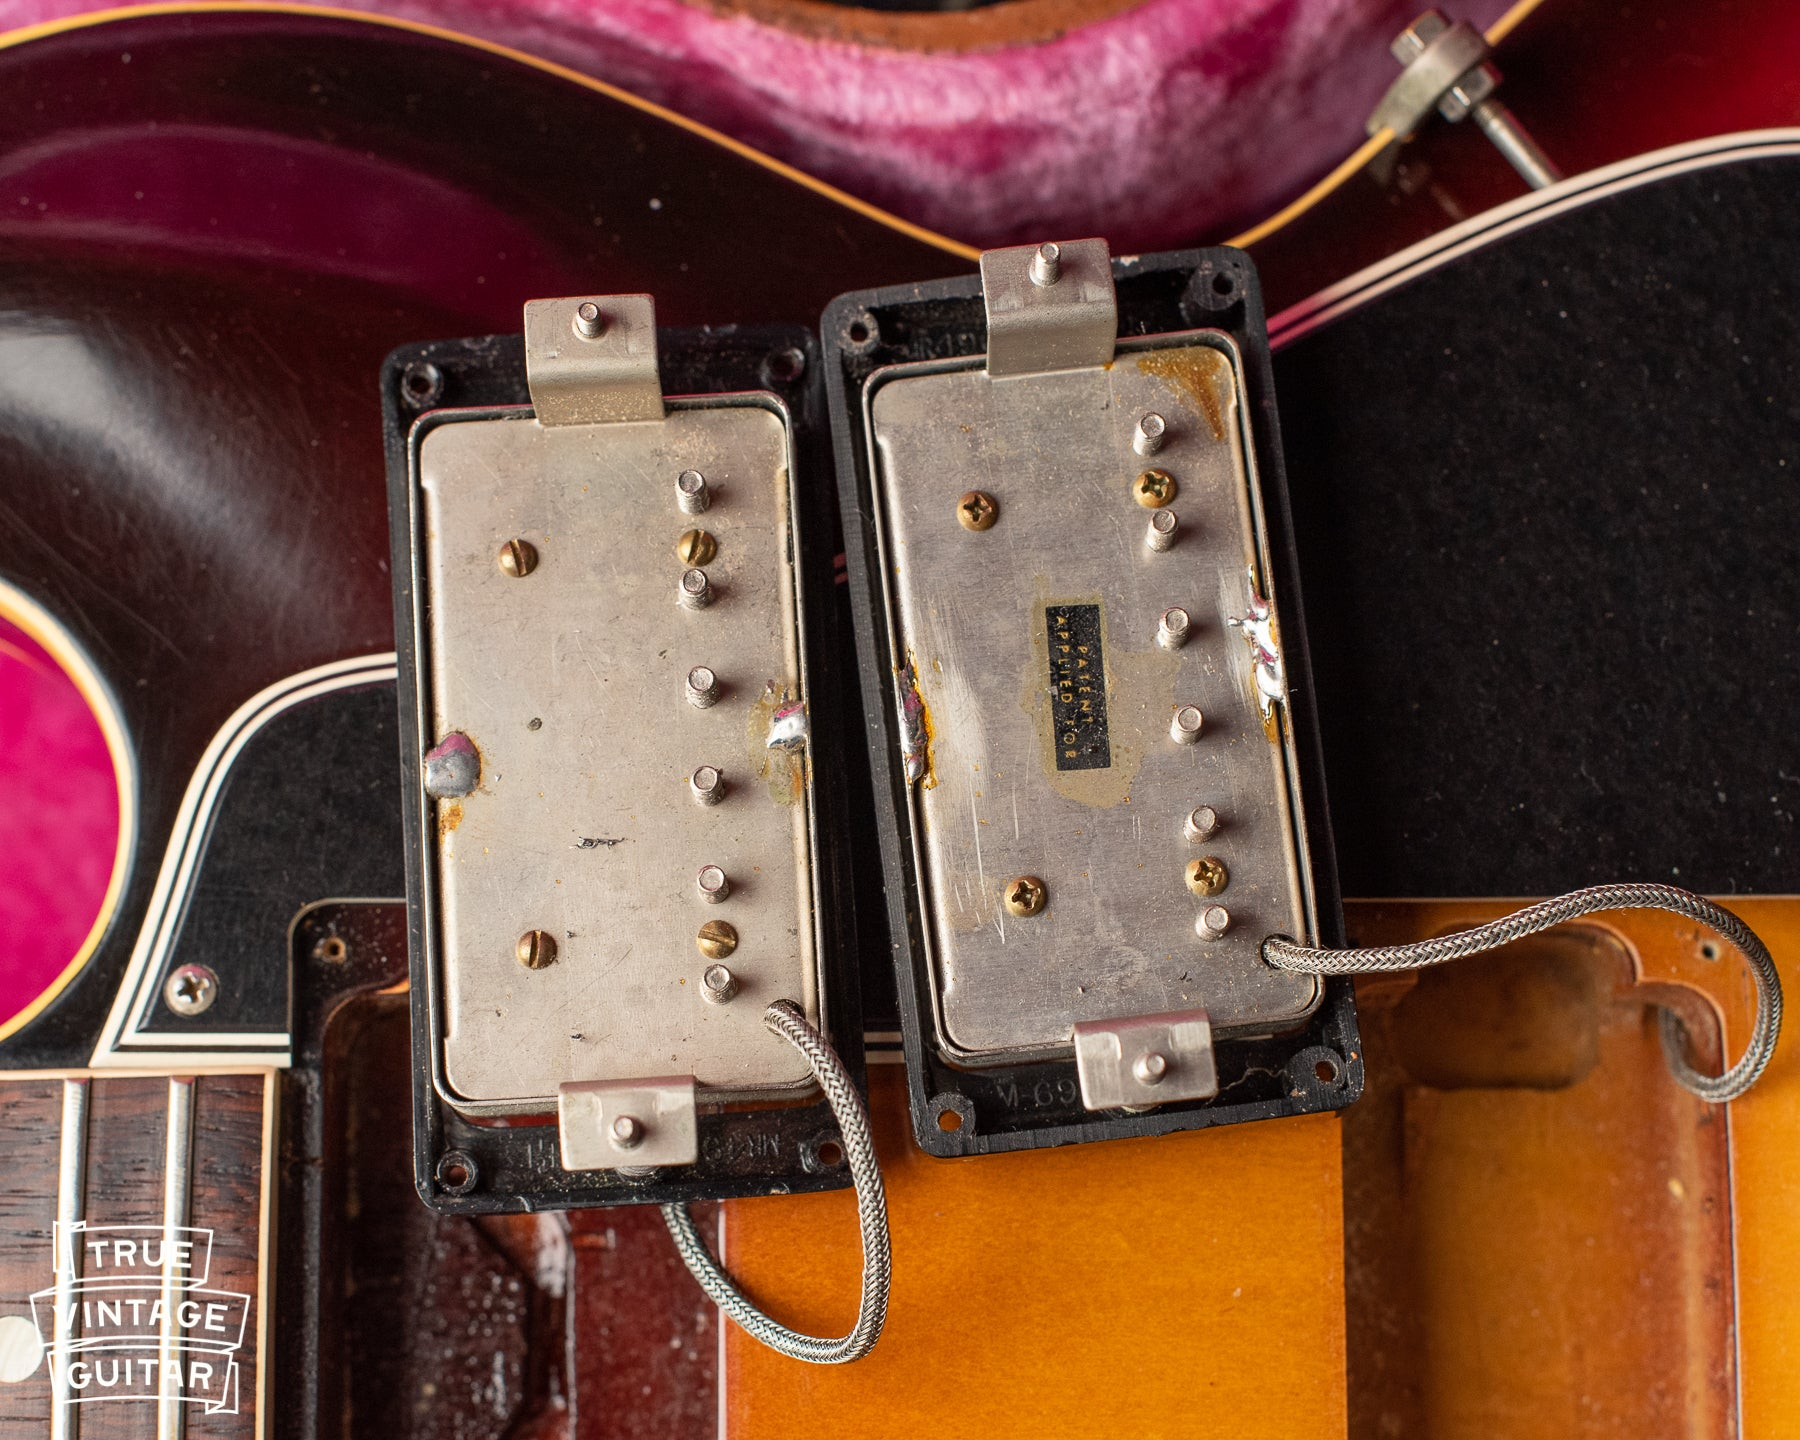 Gibson PAF humbuckers, patent applied for, no sticker out of phase